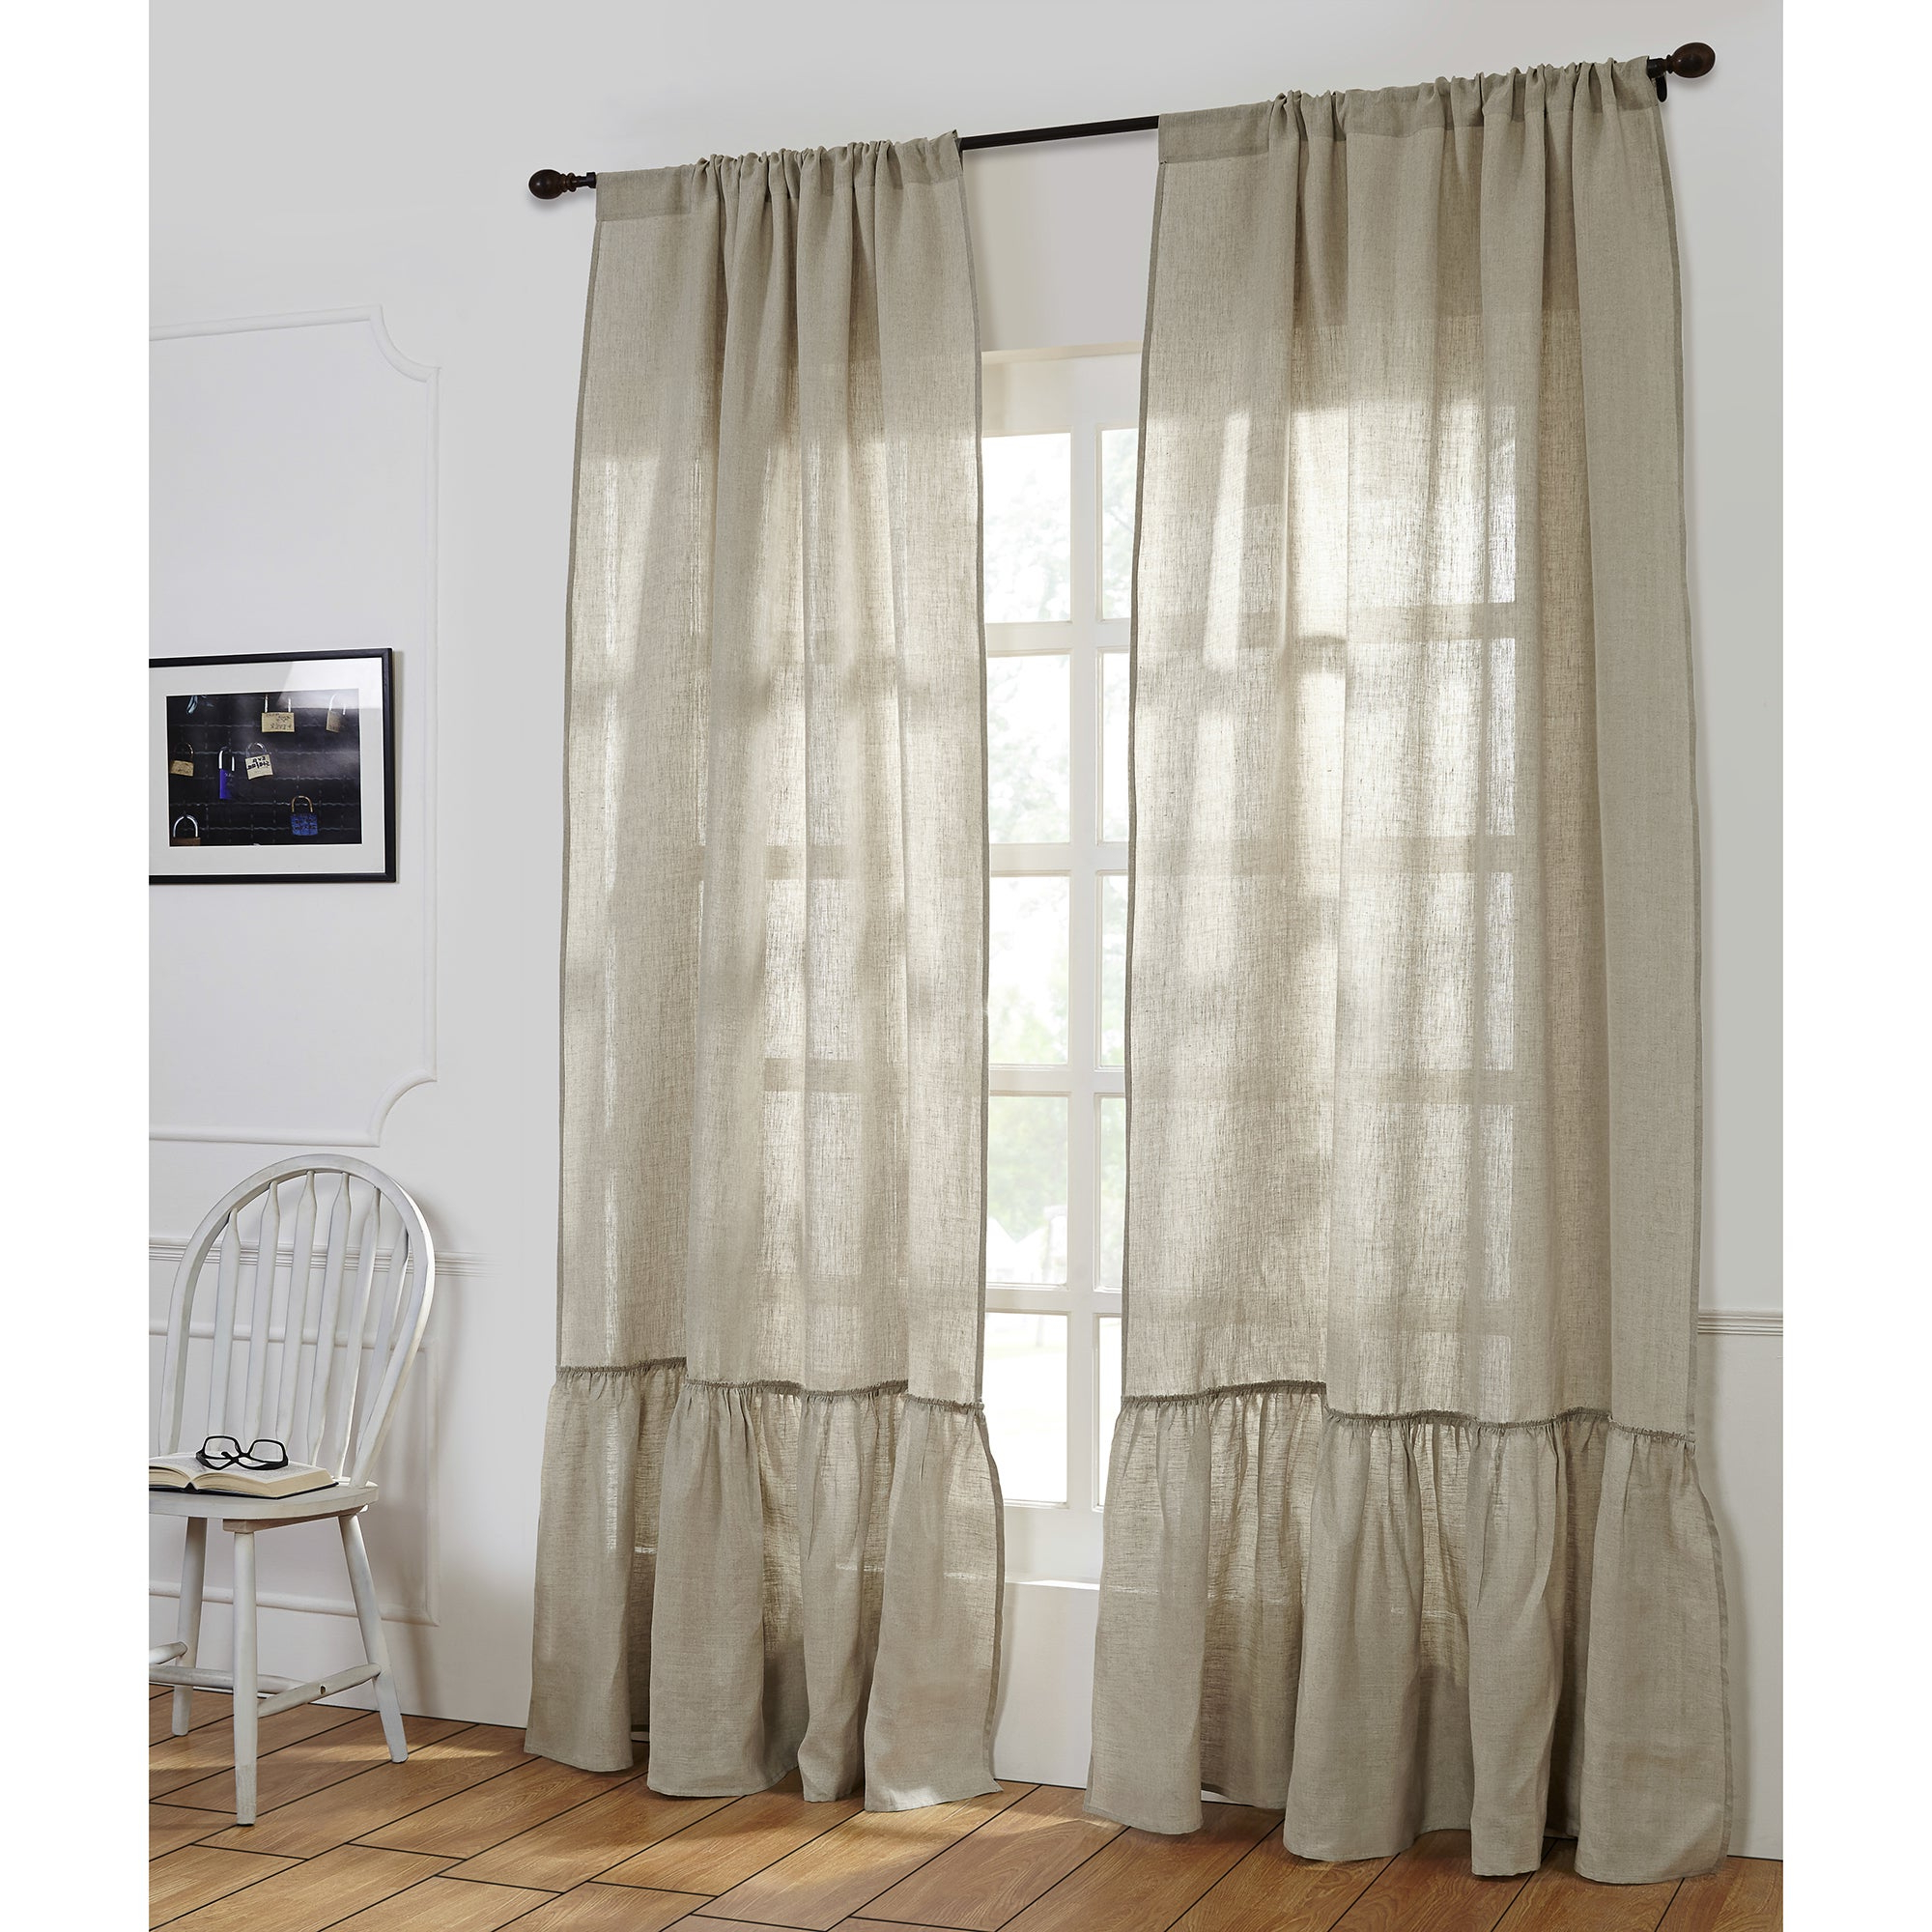 2020 Single Curtain Panels Intended For Camille Linen Ruffled Window Curtain Panel (single) (View 18 of 20)